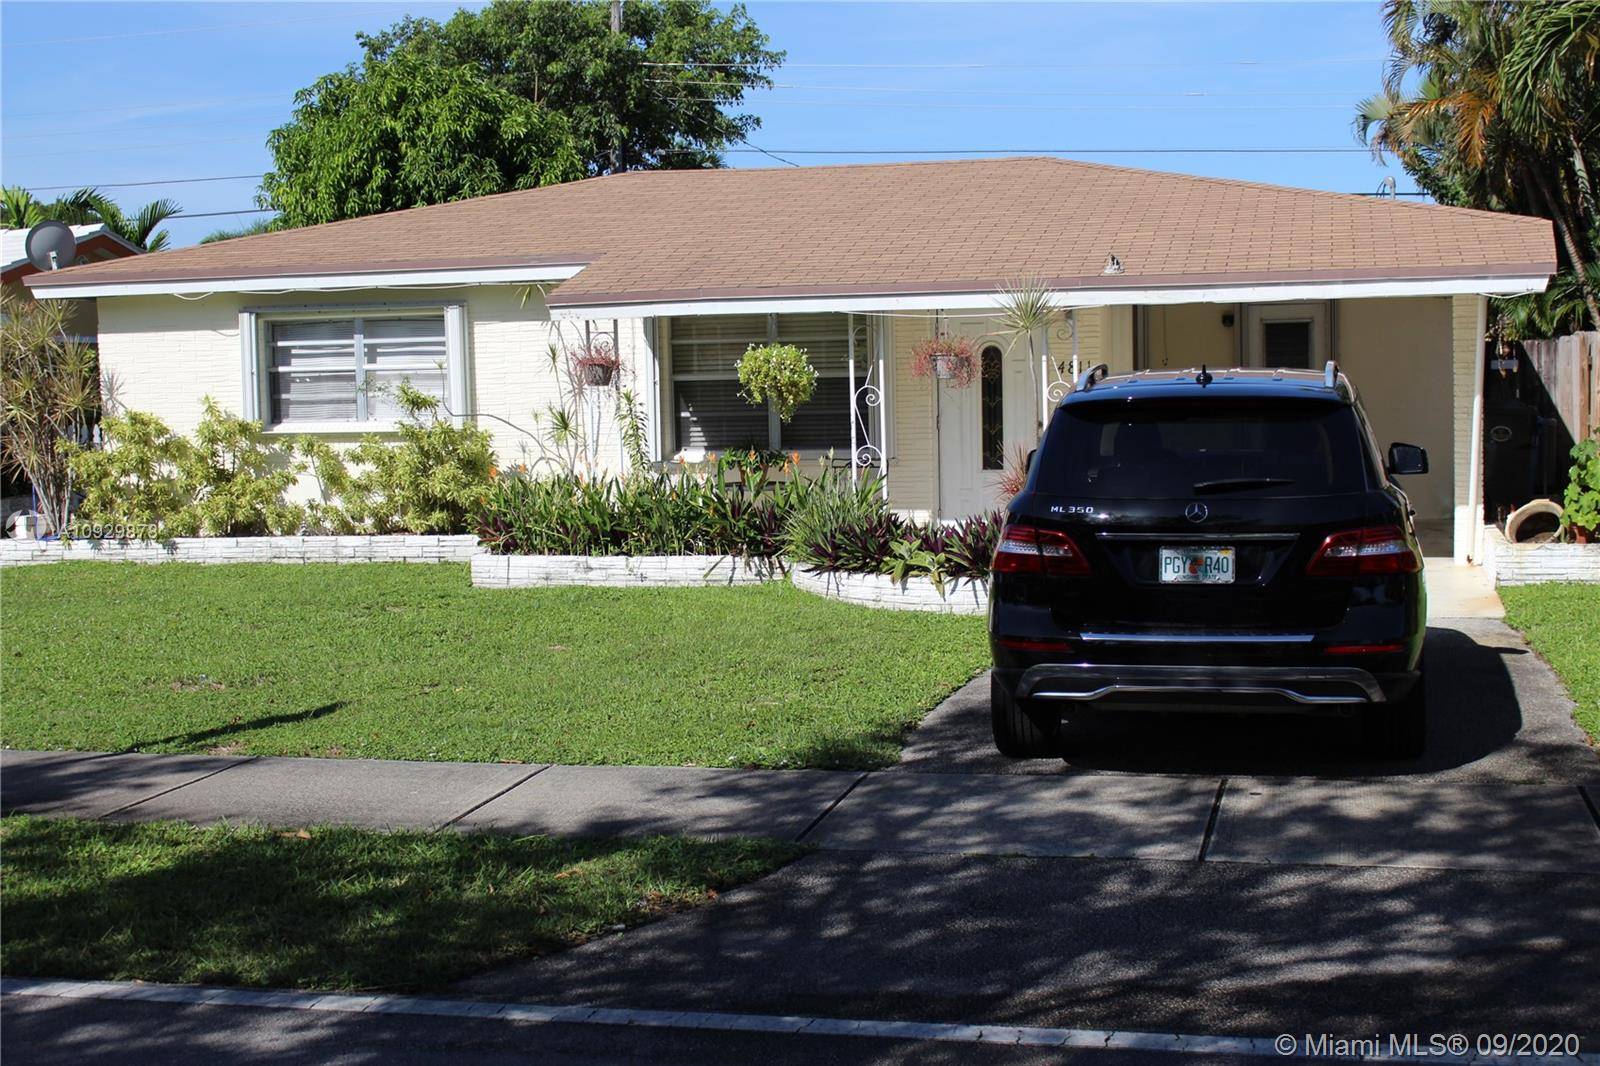 2/1 Single family home located in the Hot North Andrews Garden neighborhood. Central to everything. 5-10 min from beaches, restaurants and shopping. Large yard. Ready to move in or continue rent with long term current tenant of $1425/month. Priced to sell!